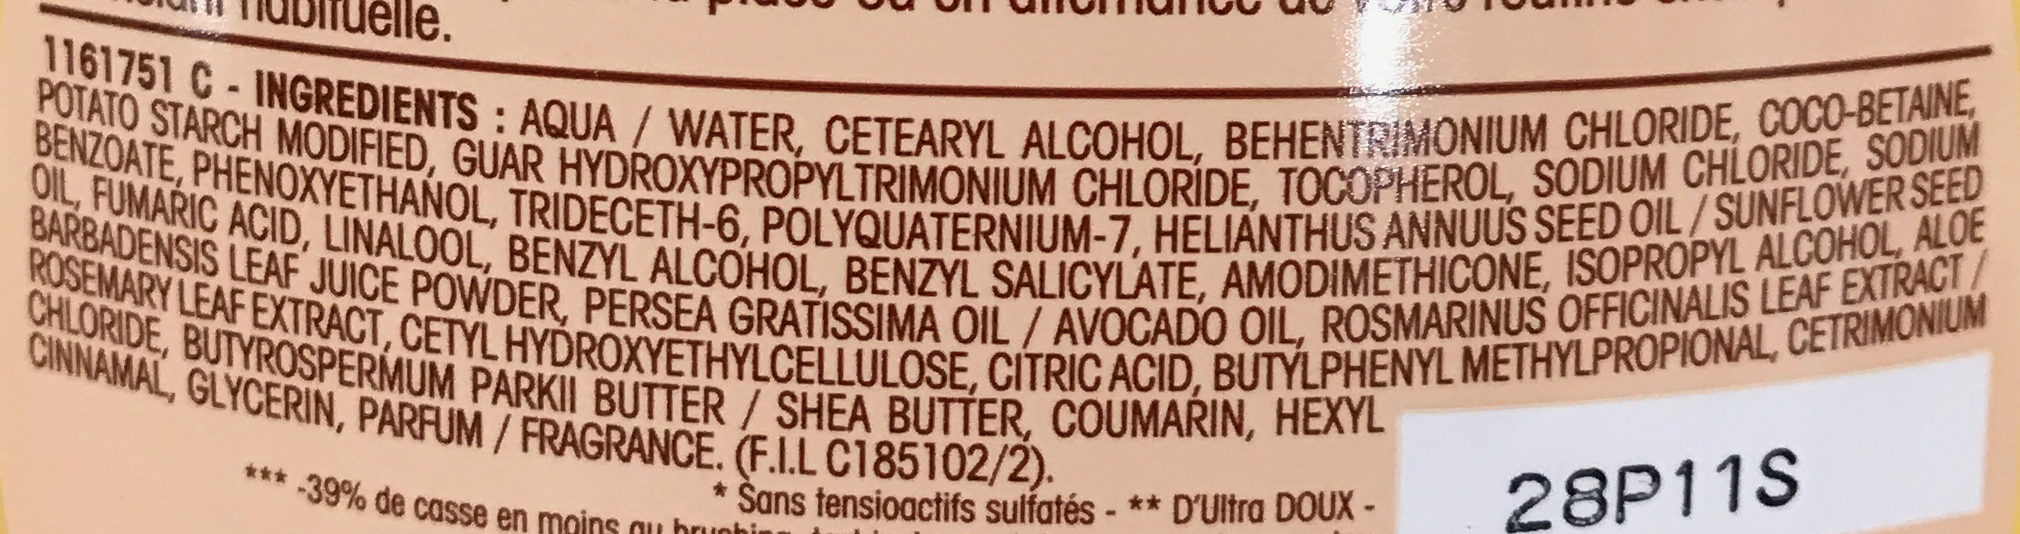 Ultra Doux Le Low Shampoo - Ingredients